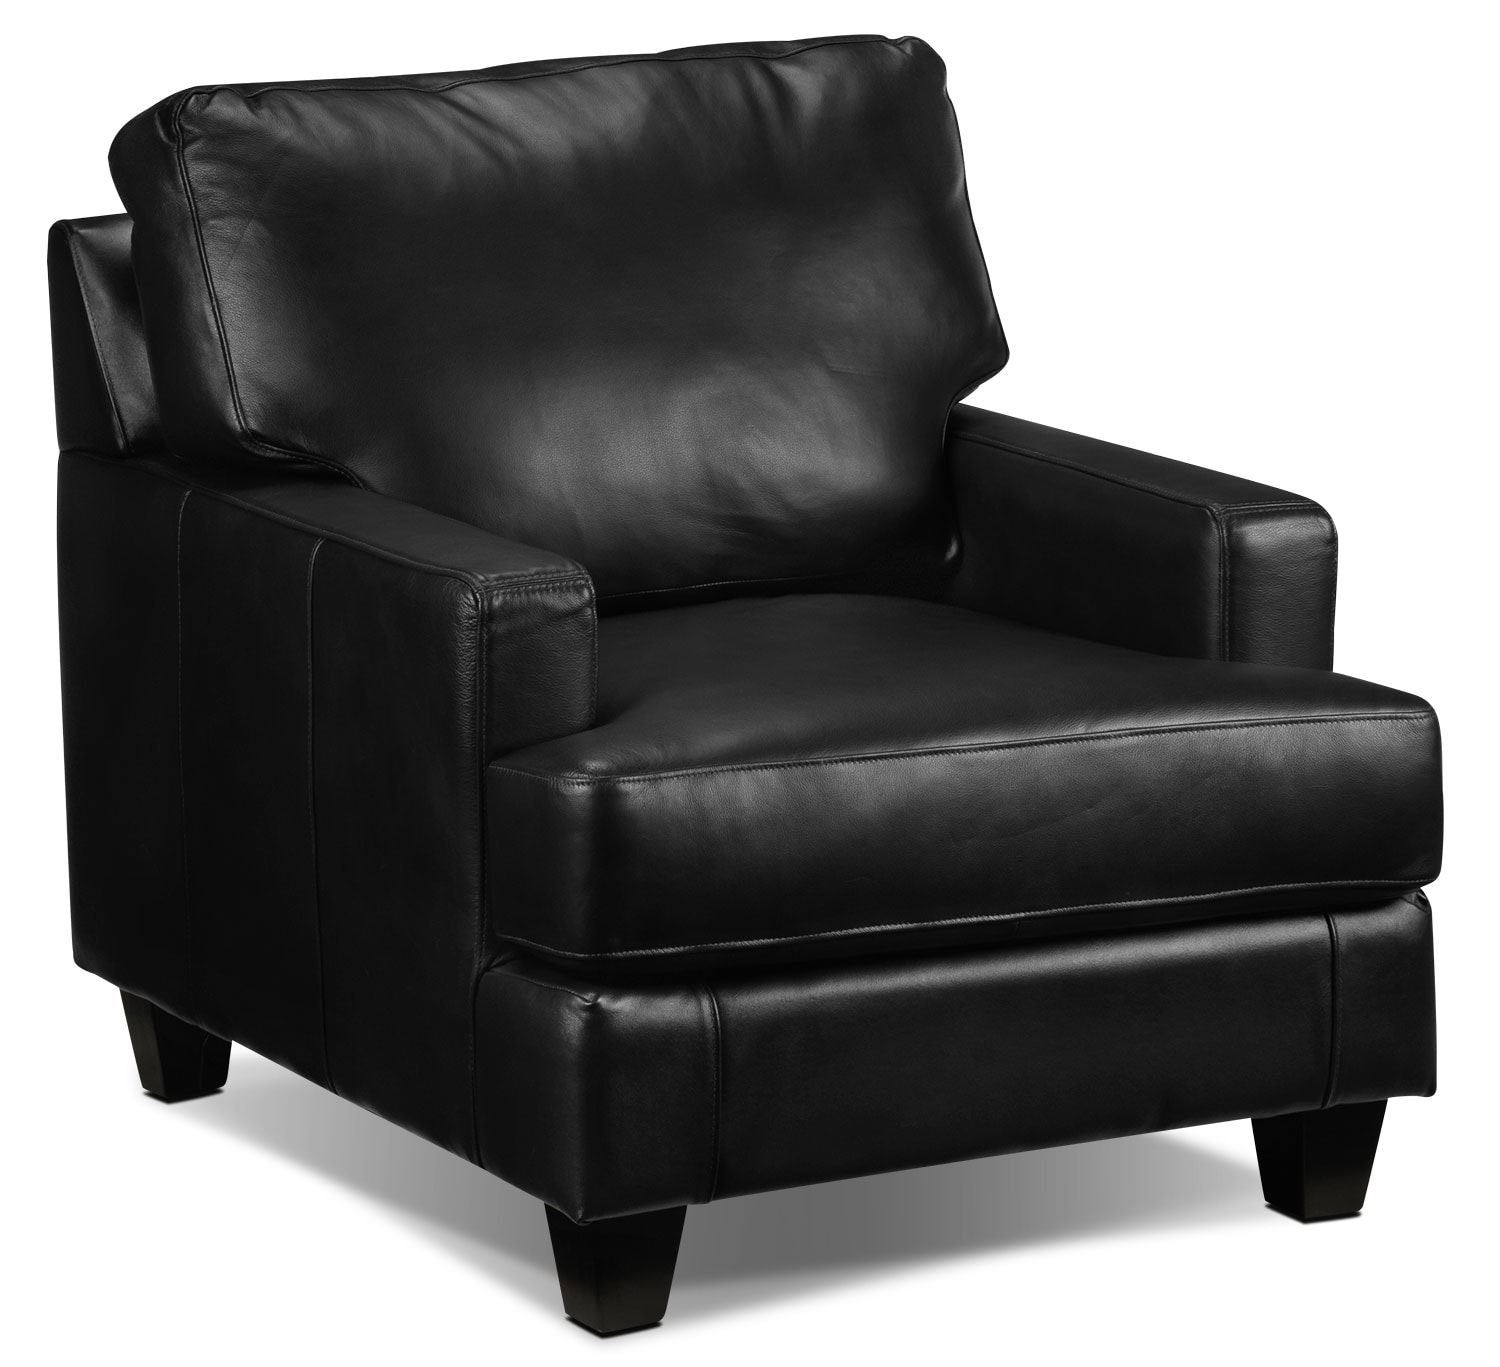 Janie Chair - Black